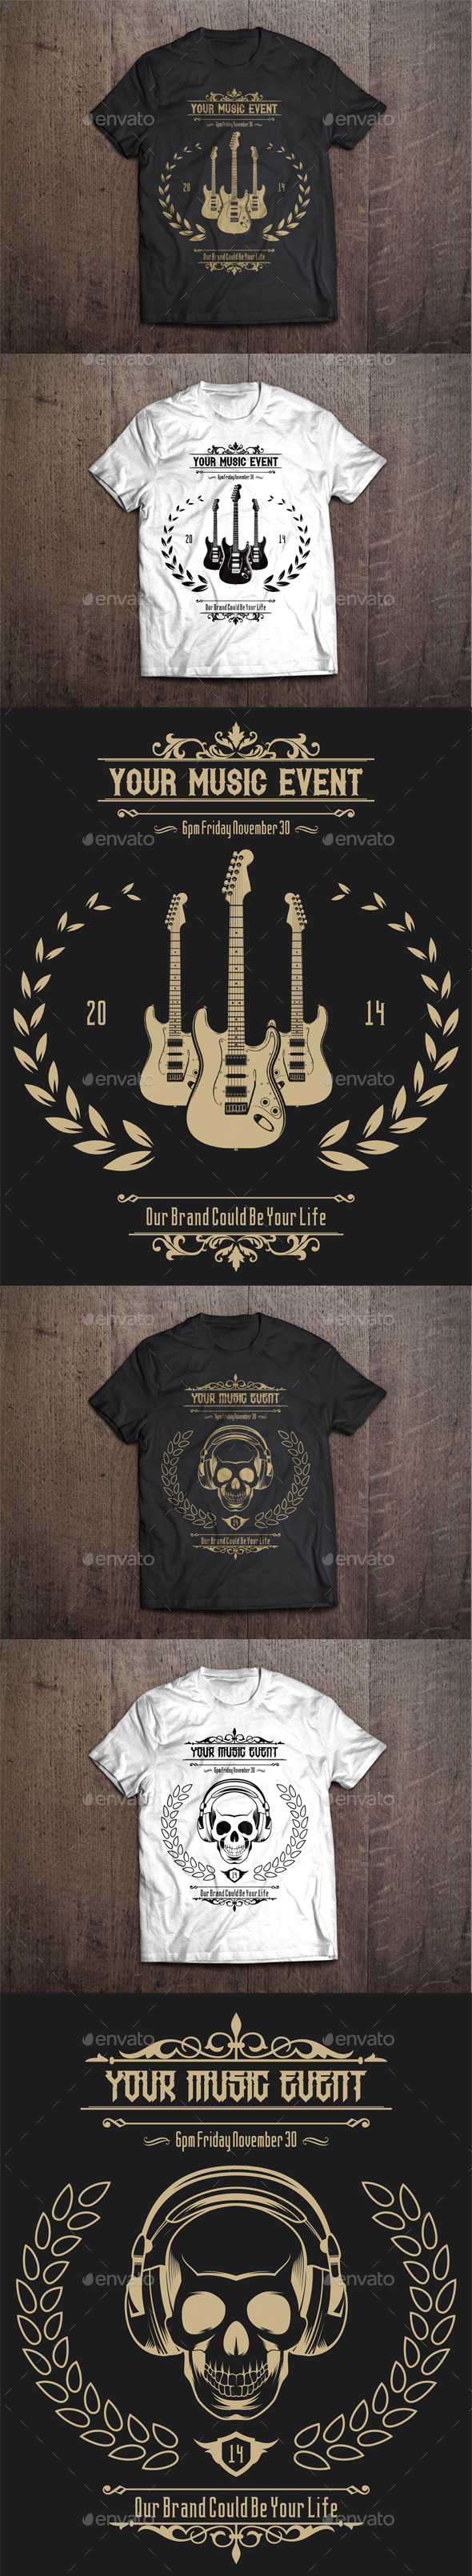 GraphicRiver 2 T-Shirt Template #2 9456032